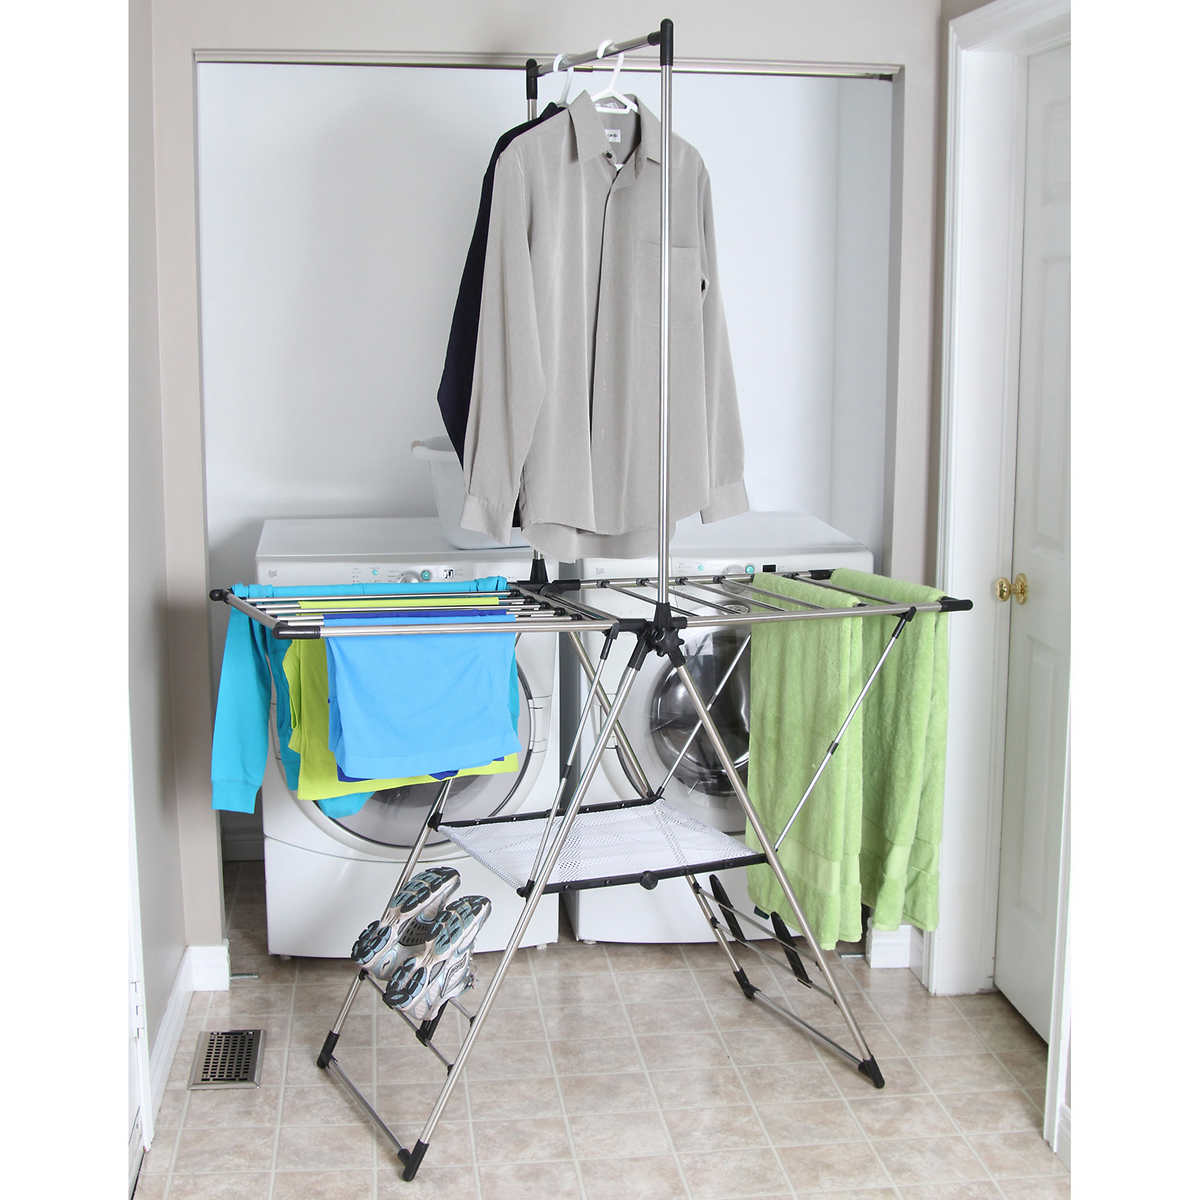 Neatfreak laundry drying rack compact cleaning amp organizing for - Greenway Home Products Stainless Steel Drying Rack With Mesh Shelf